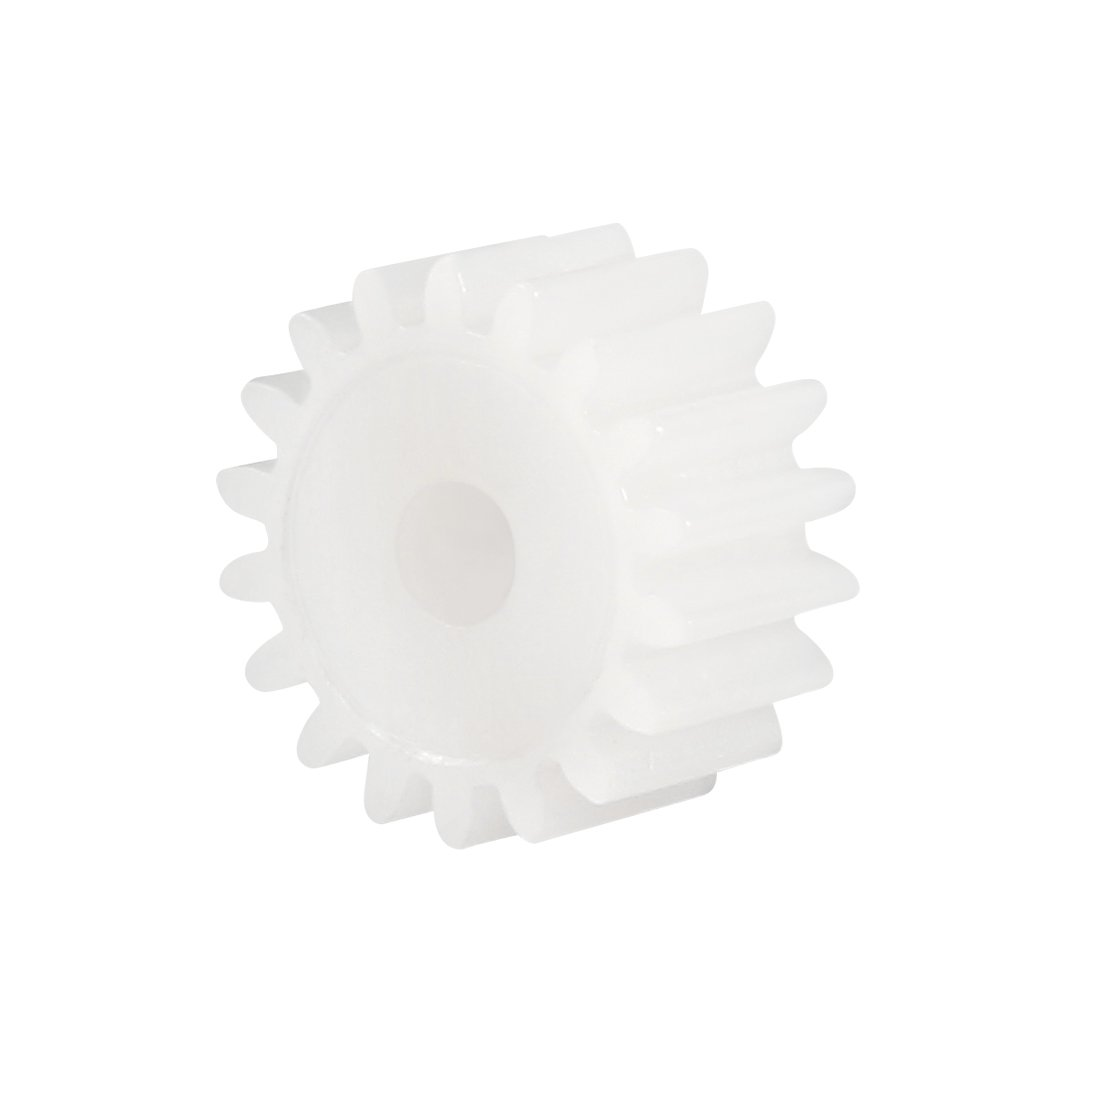 sourcingmap 20pcs Plastic Gears 18 Teeth Model 182.5A Reduction Gear Plastic Worm Gears for RC Car Robot Motor